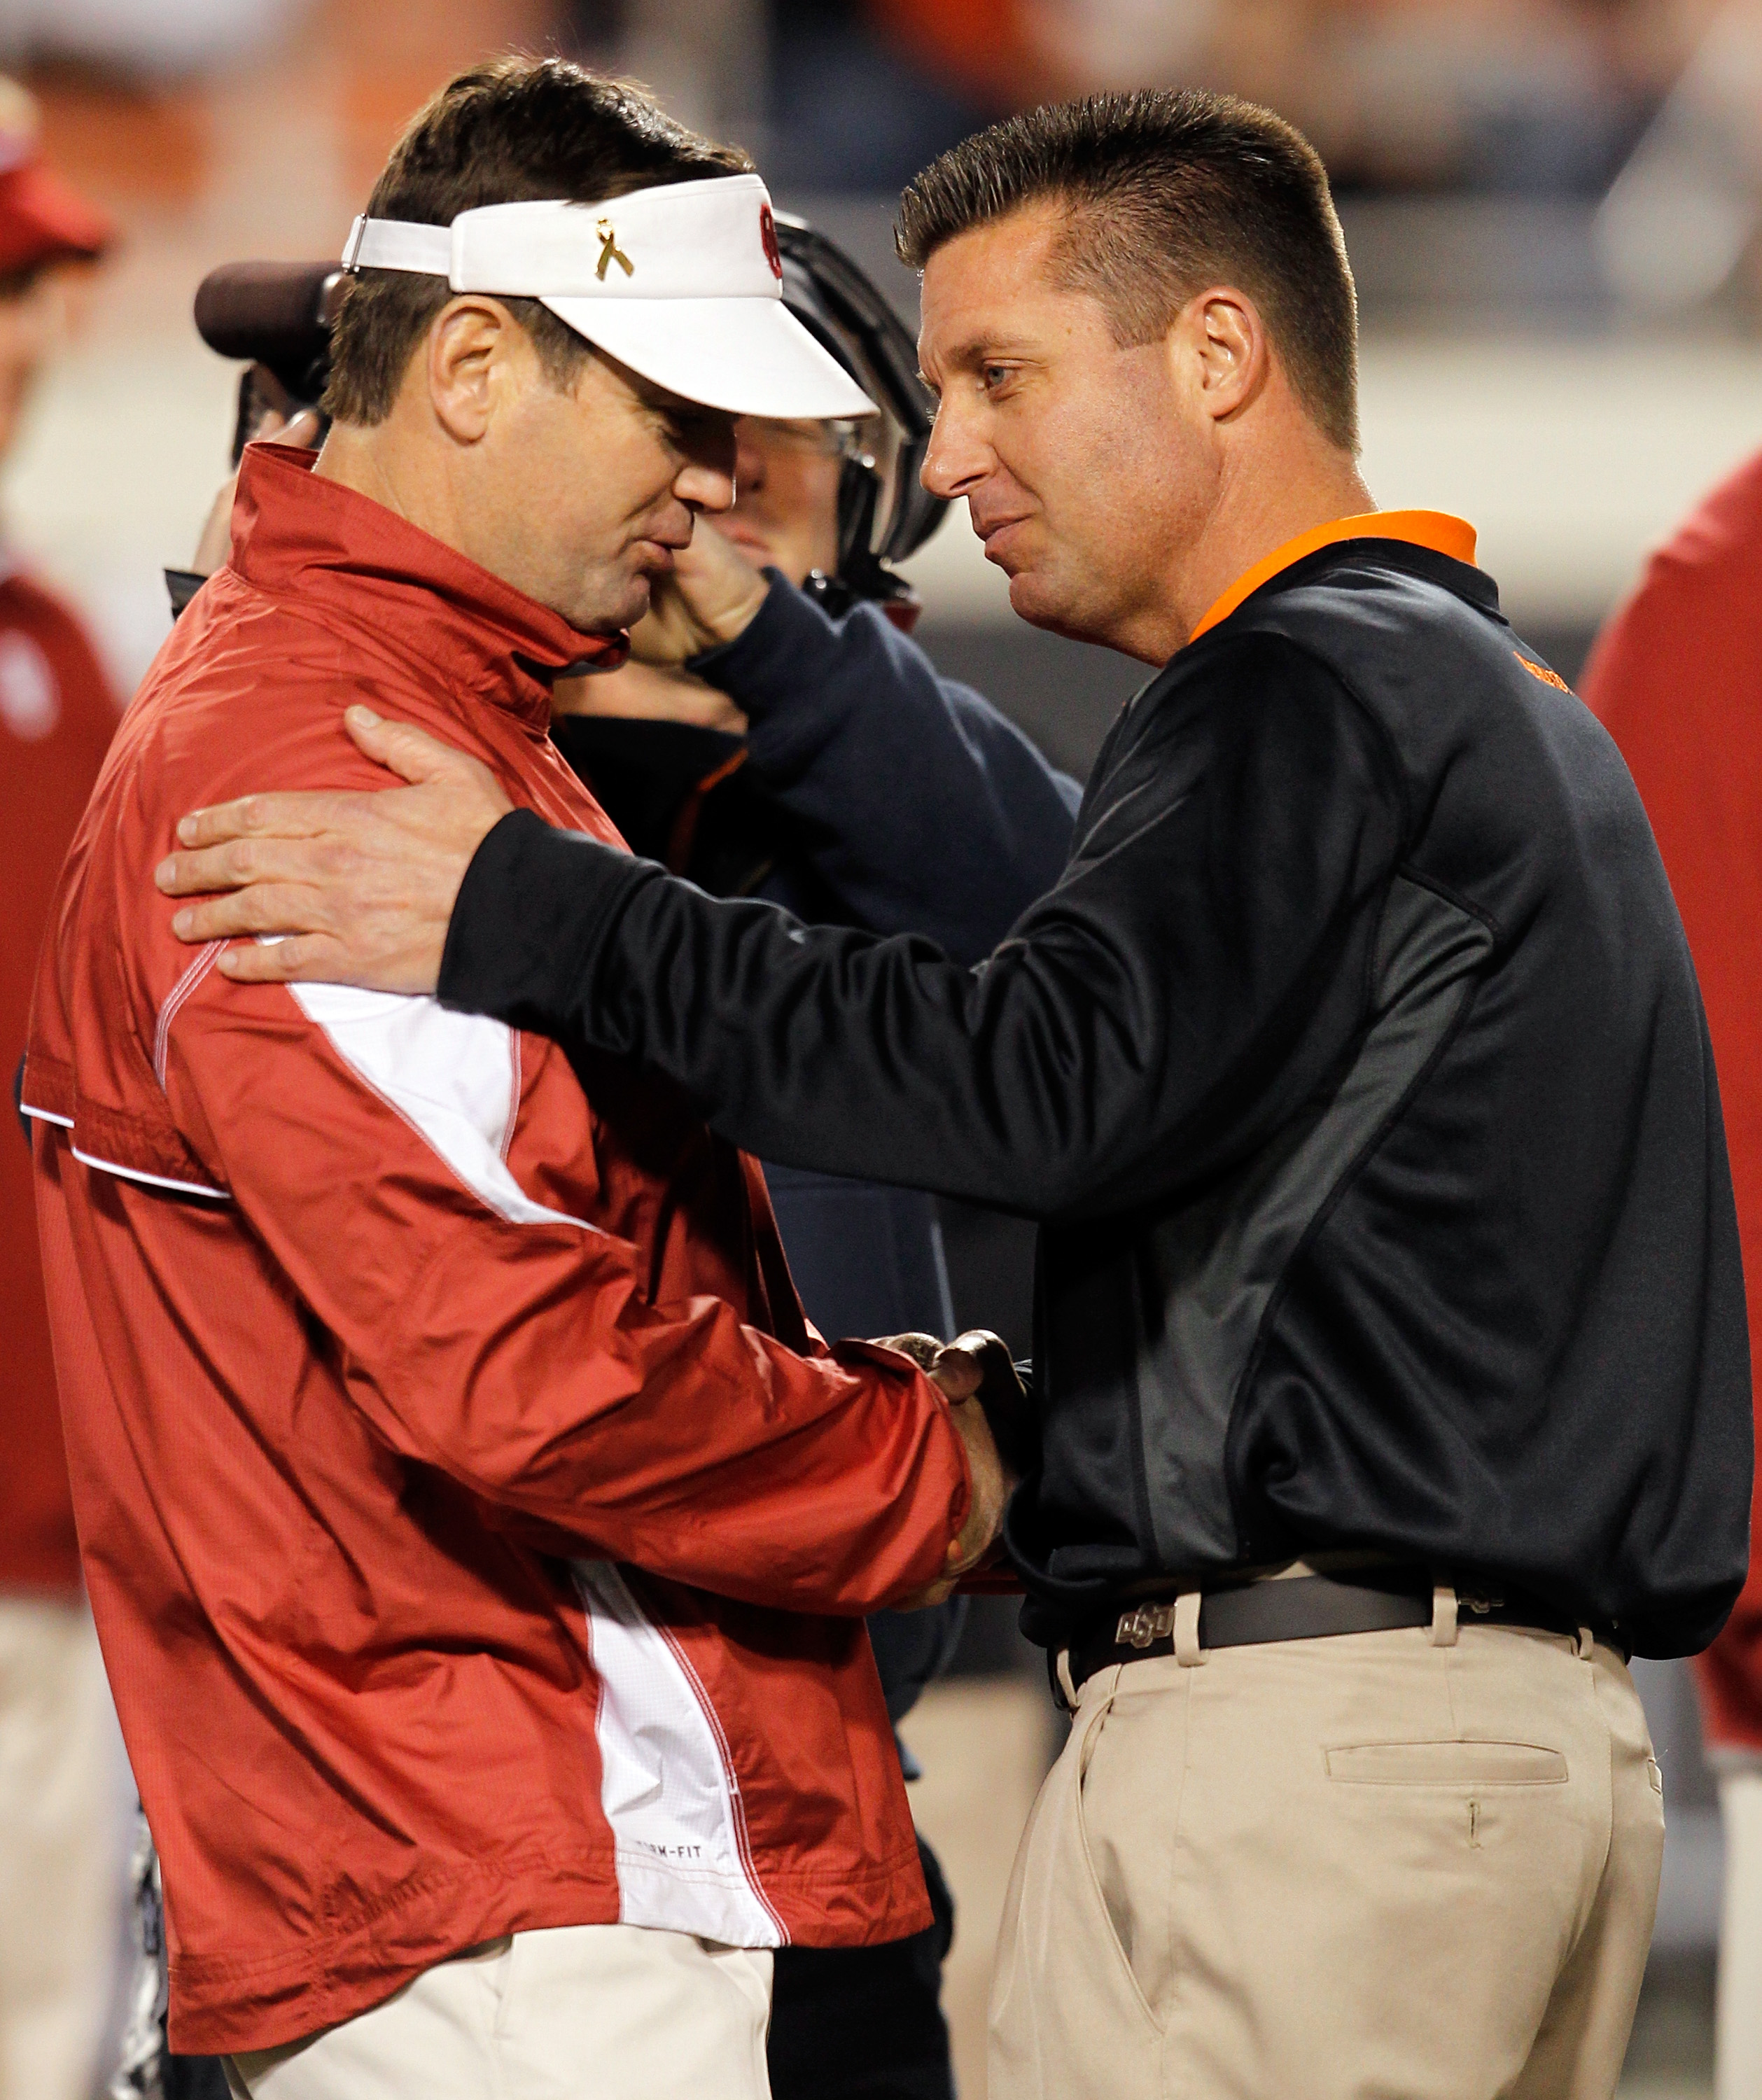 STILLWATER, OK - NOVEMBER 27:  Head coach Bob Stoops (L) of the Oklahoma Sooners talks with head coach Mike Gundy (R) of the Oklahoma State Cowboys at Boone Pickens Stadium on November 27, 2010 in Stillwater, Oklahoma.  (Photo by Tom Pennington/Getty Imag